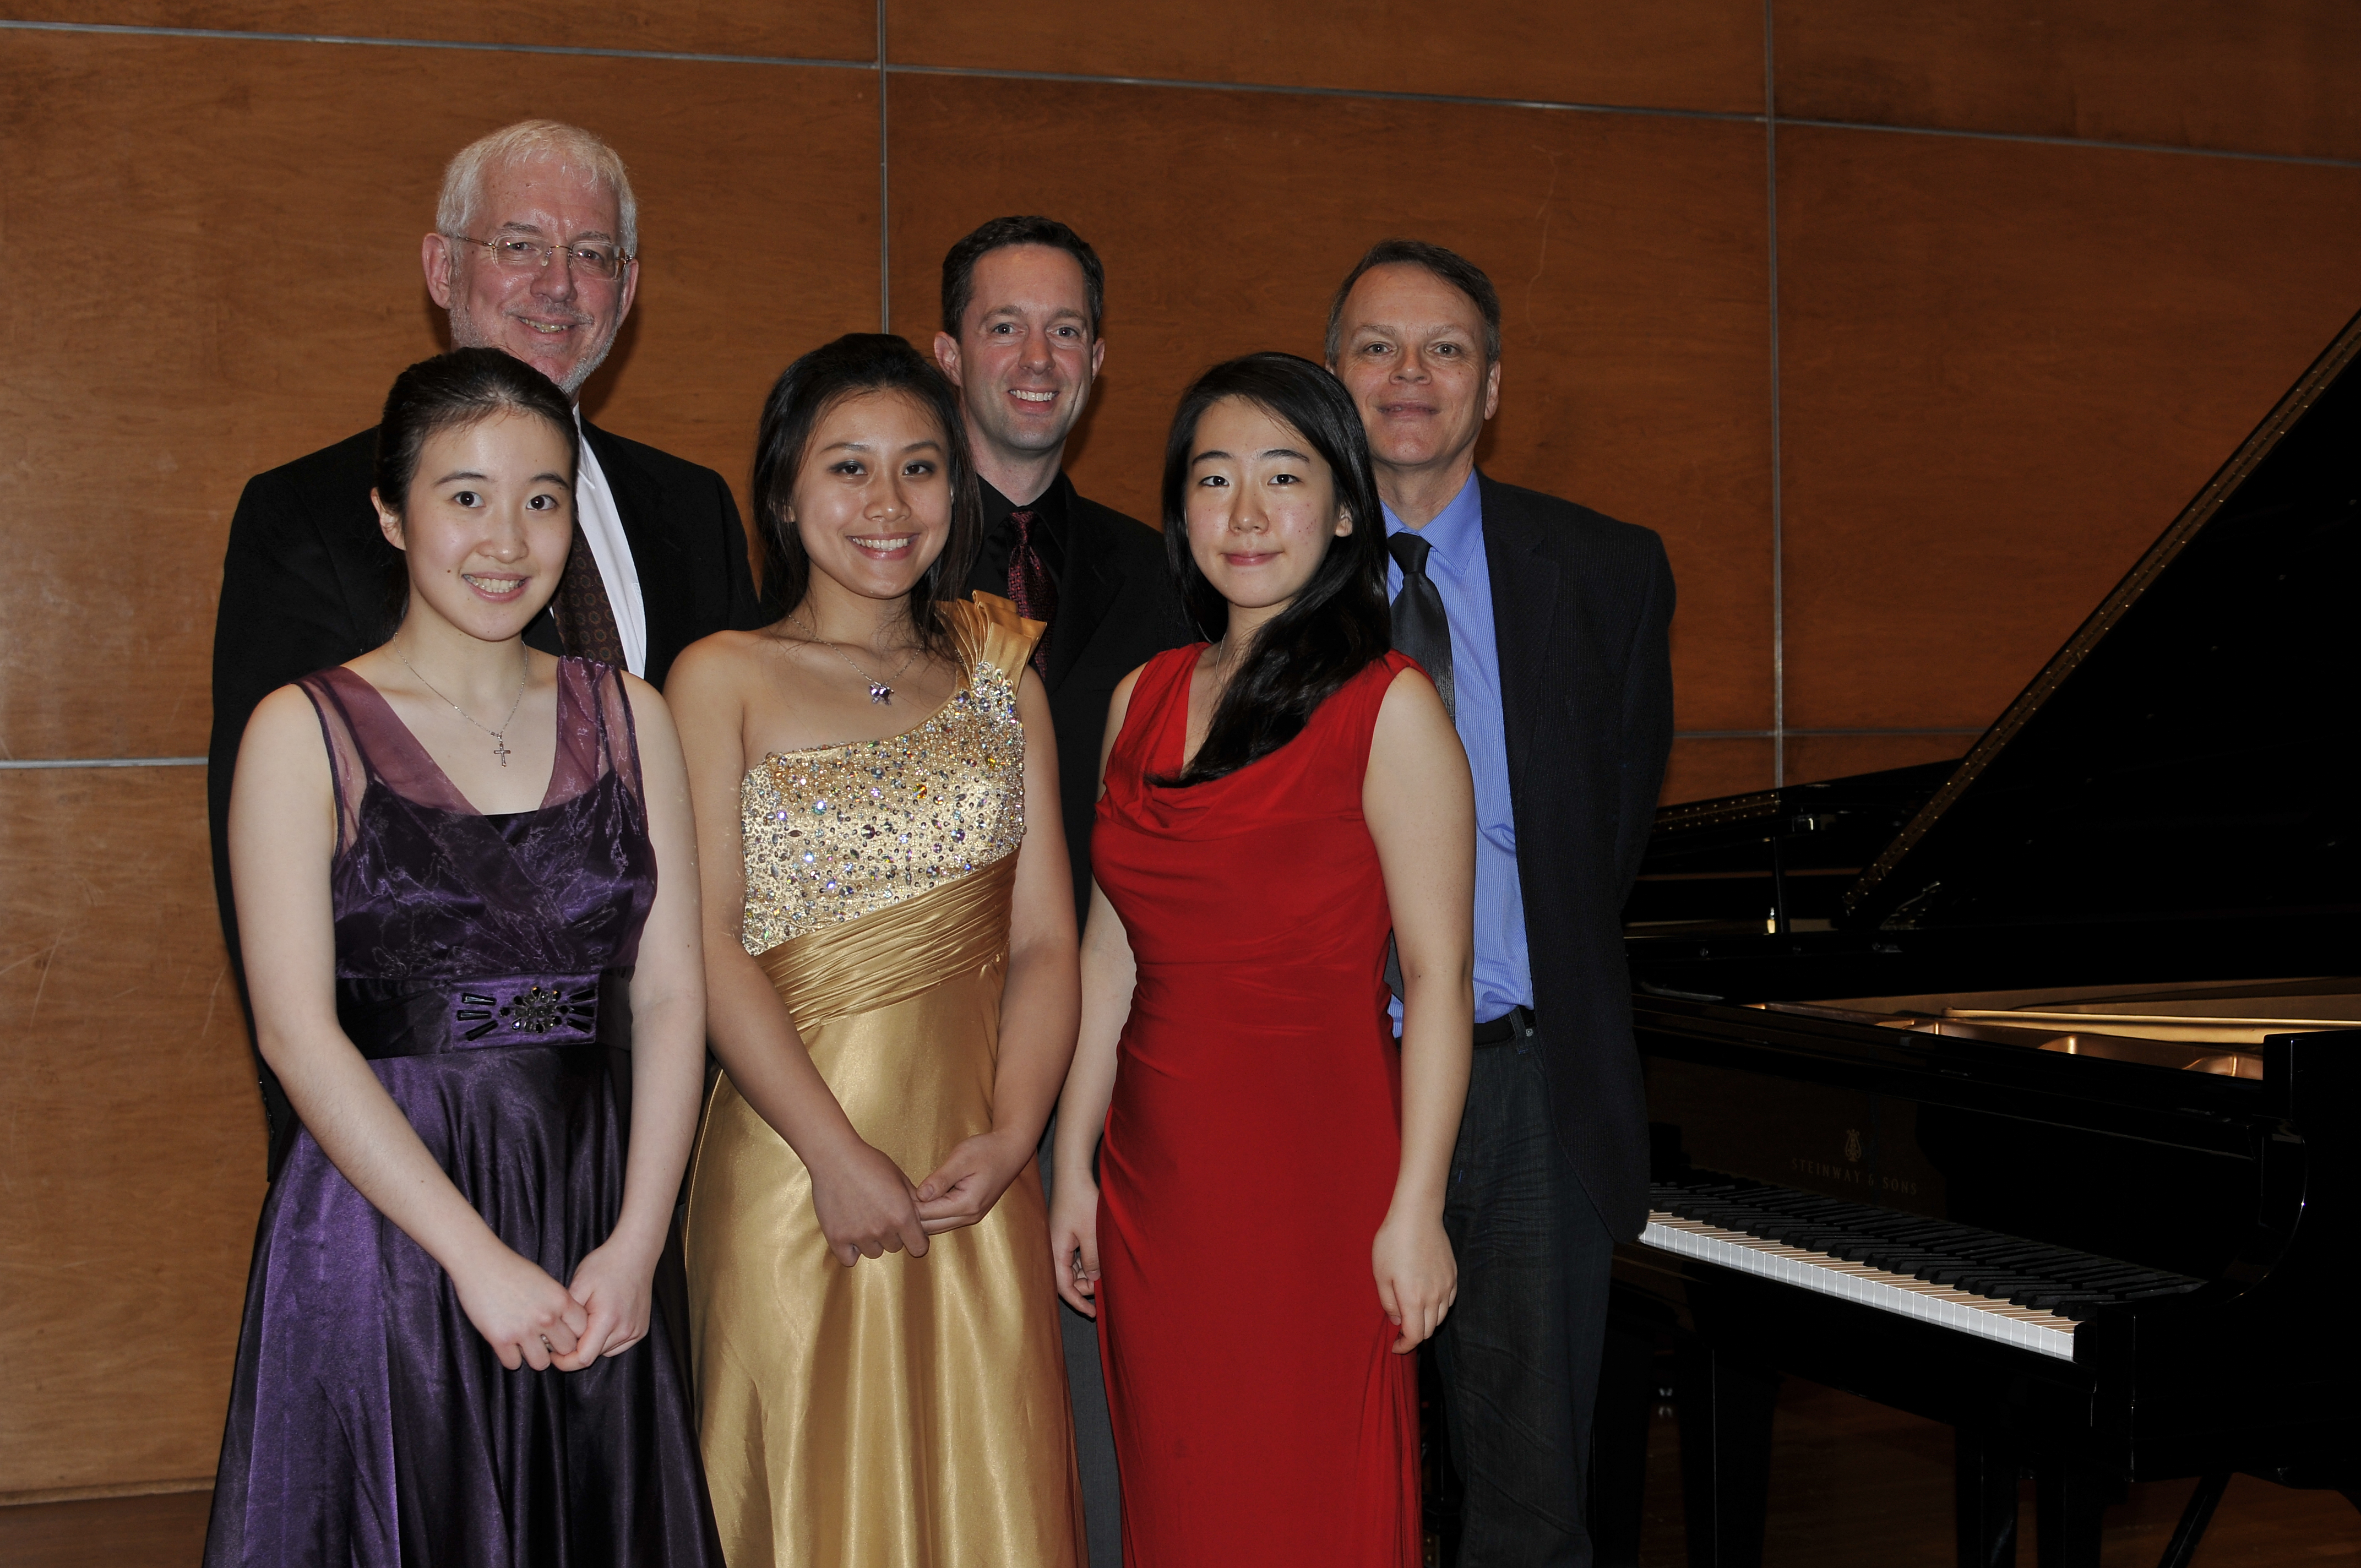 Left to right: Front row: Grace Zhang, second place winner, Grand Prize Winner Xuesha Hu, third place winner Min Ji Lee. Back row: Competition judge Robert Weirich of the UMKC Conservatory of Music, Richardson Symphony music director and conductor Clay Couturiaux and competition judge Robert Shannon of Oberlin College and Conservatory of Music.